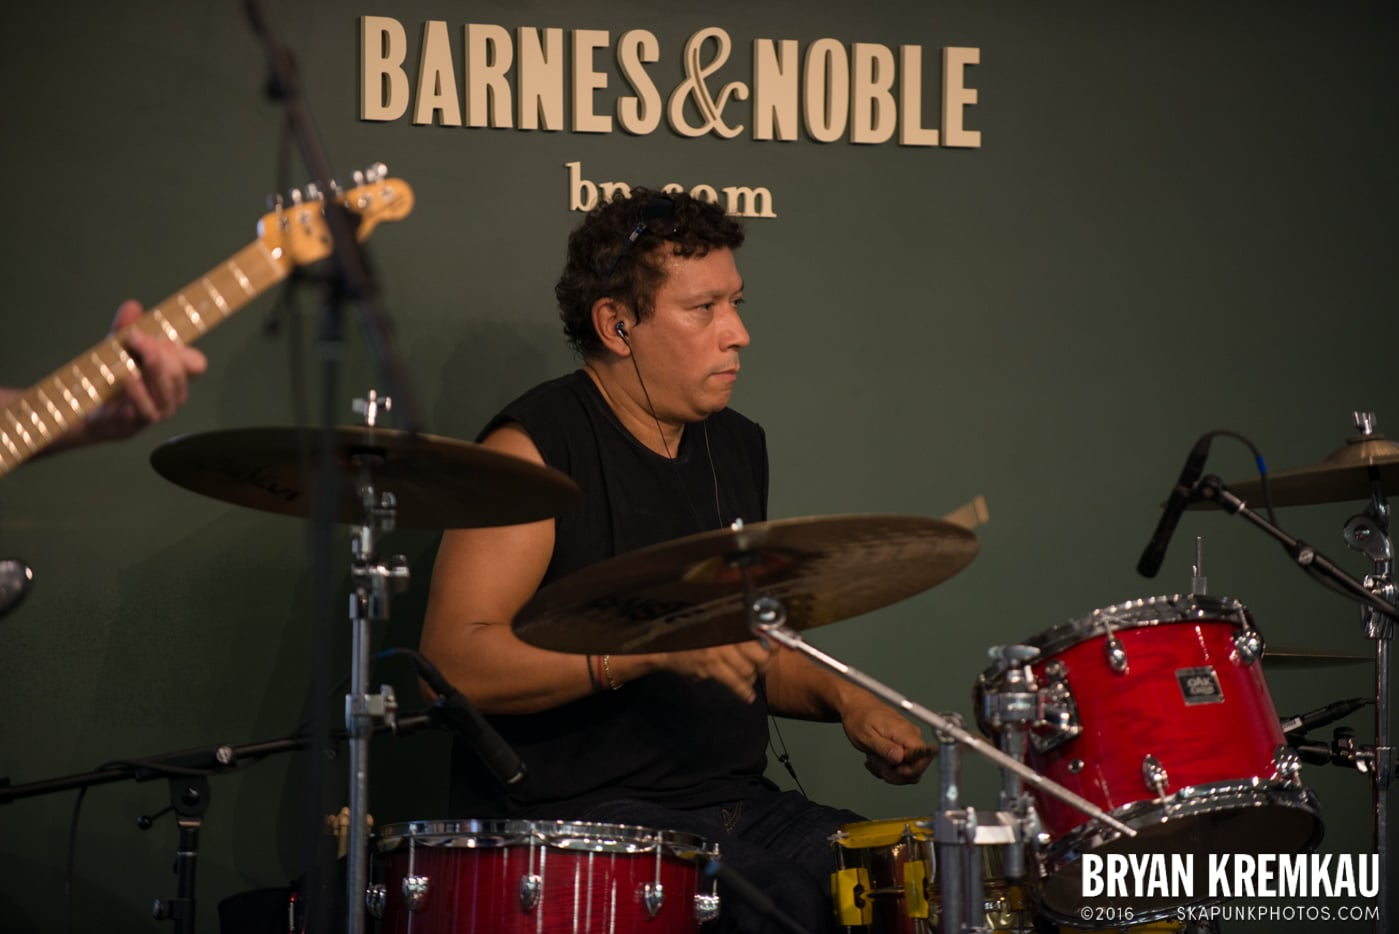 Willie Nile @ Barnes & Noble Union Square, NYC - June 25th 2013 (6)